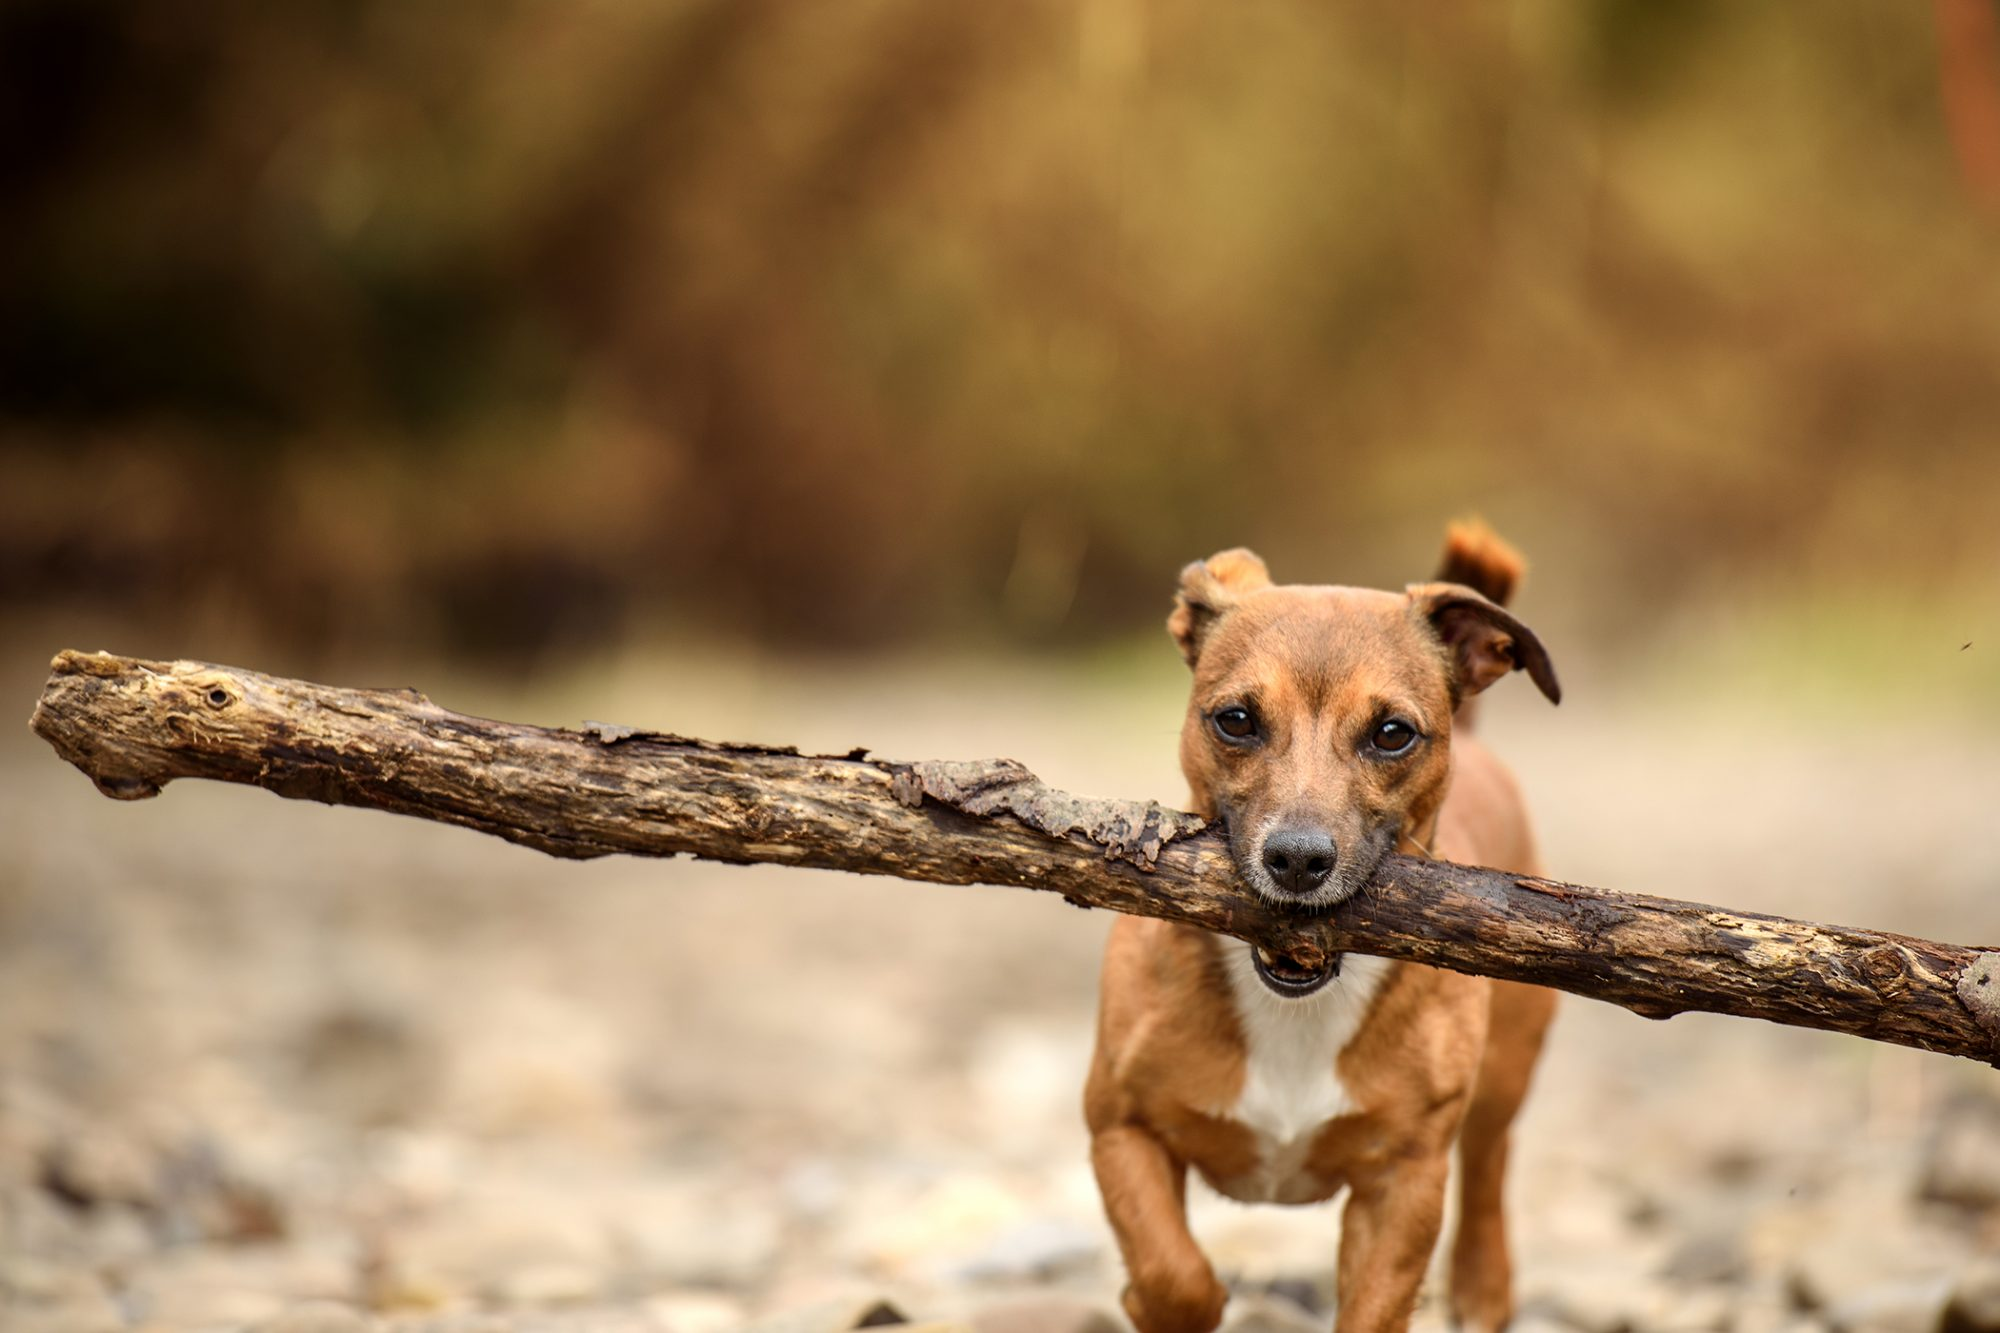 small strong dog carrying big stick